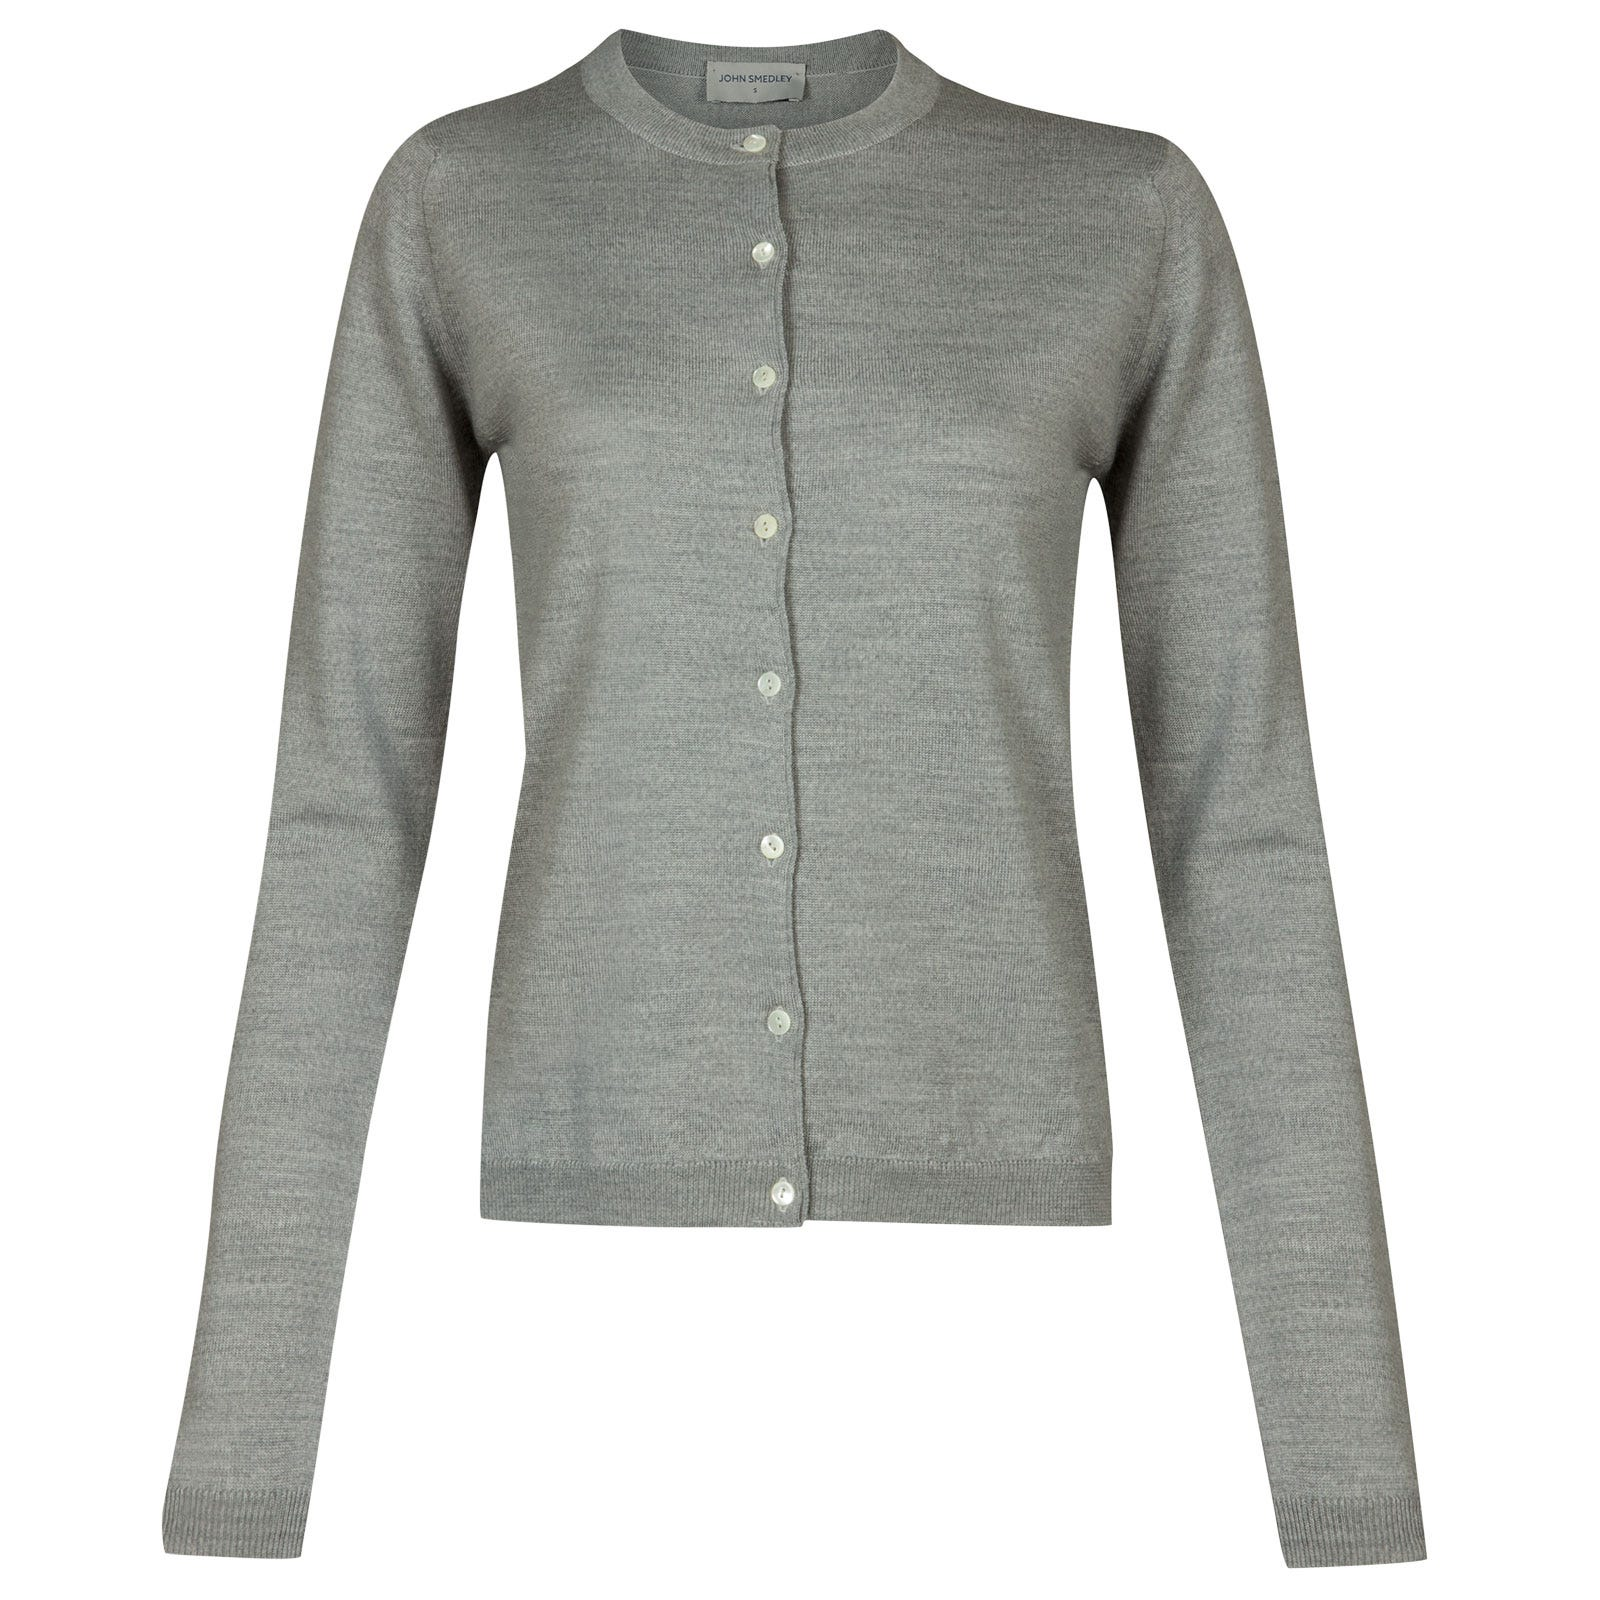 John Smedley willa Merino Wool Cardigan in Bardot Grey-L